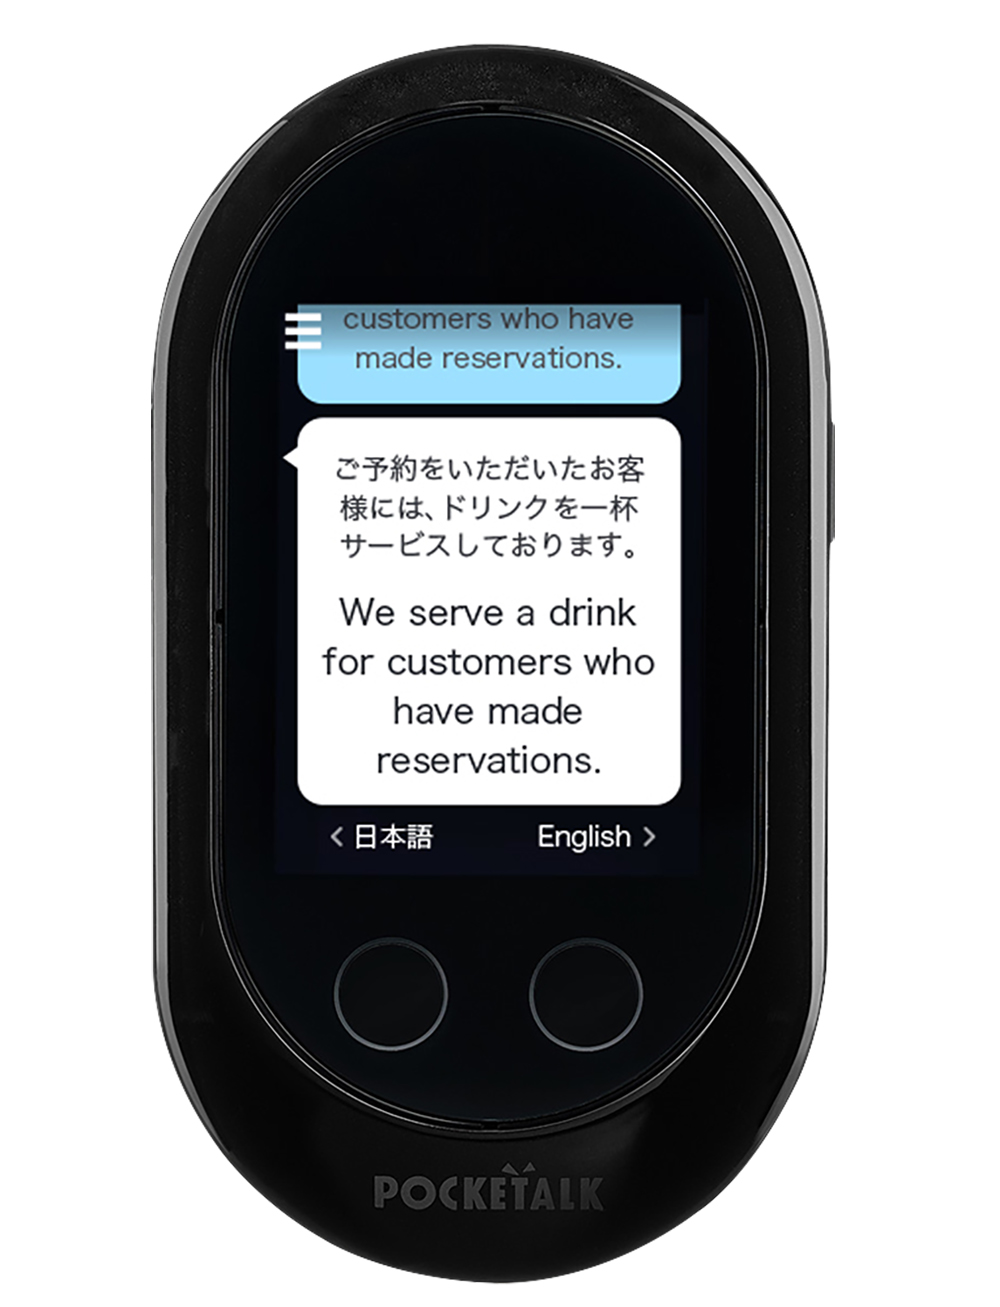 Reservation | Free yourself from any restraints in Japan with Pocket